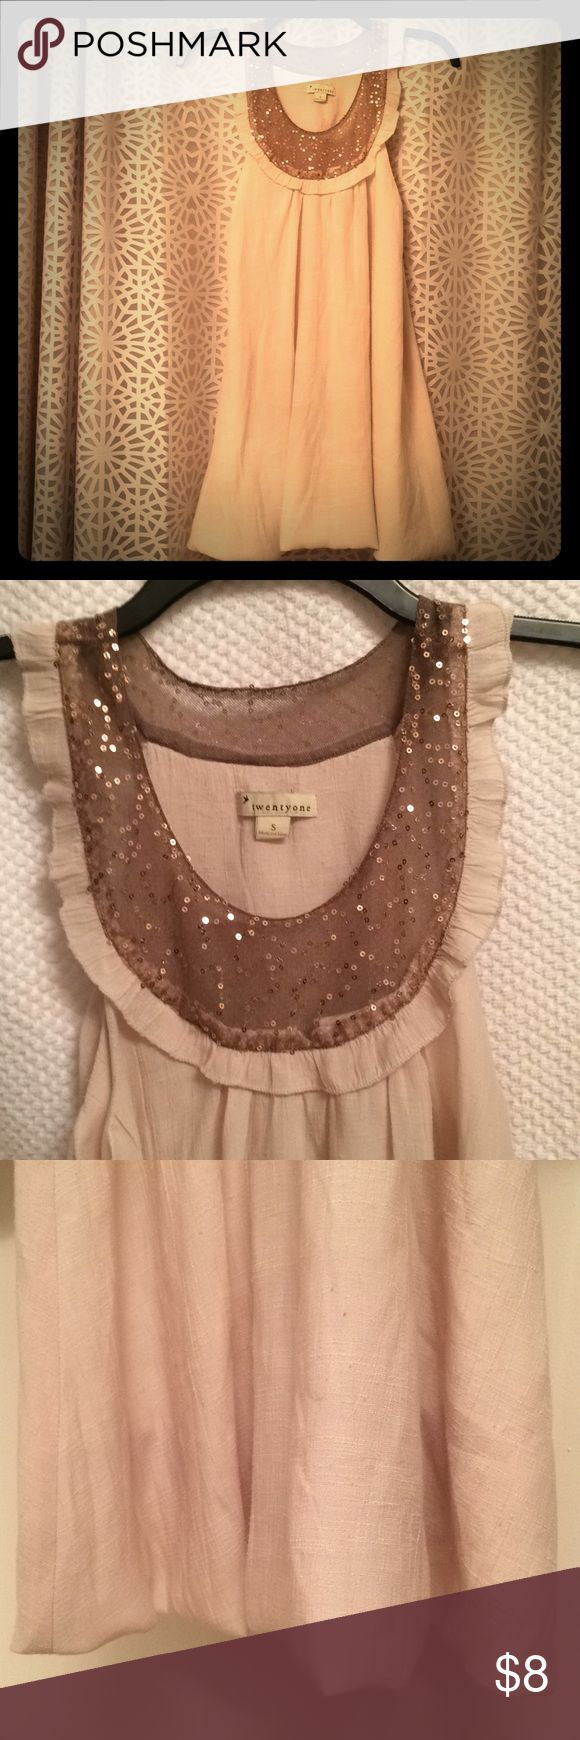 Twentyone Cream Potato-Sack Dress w/ Gold Sequins Brand: Twentyone Size: Small Condition: Fair *Some fabric balls, a few loose sequins, no fraying, seam in back looks a little crooked, but only slightly noticeable* twentyone Dresses